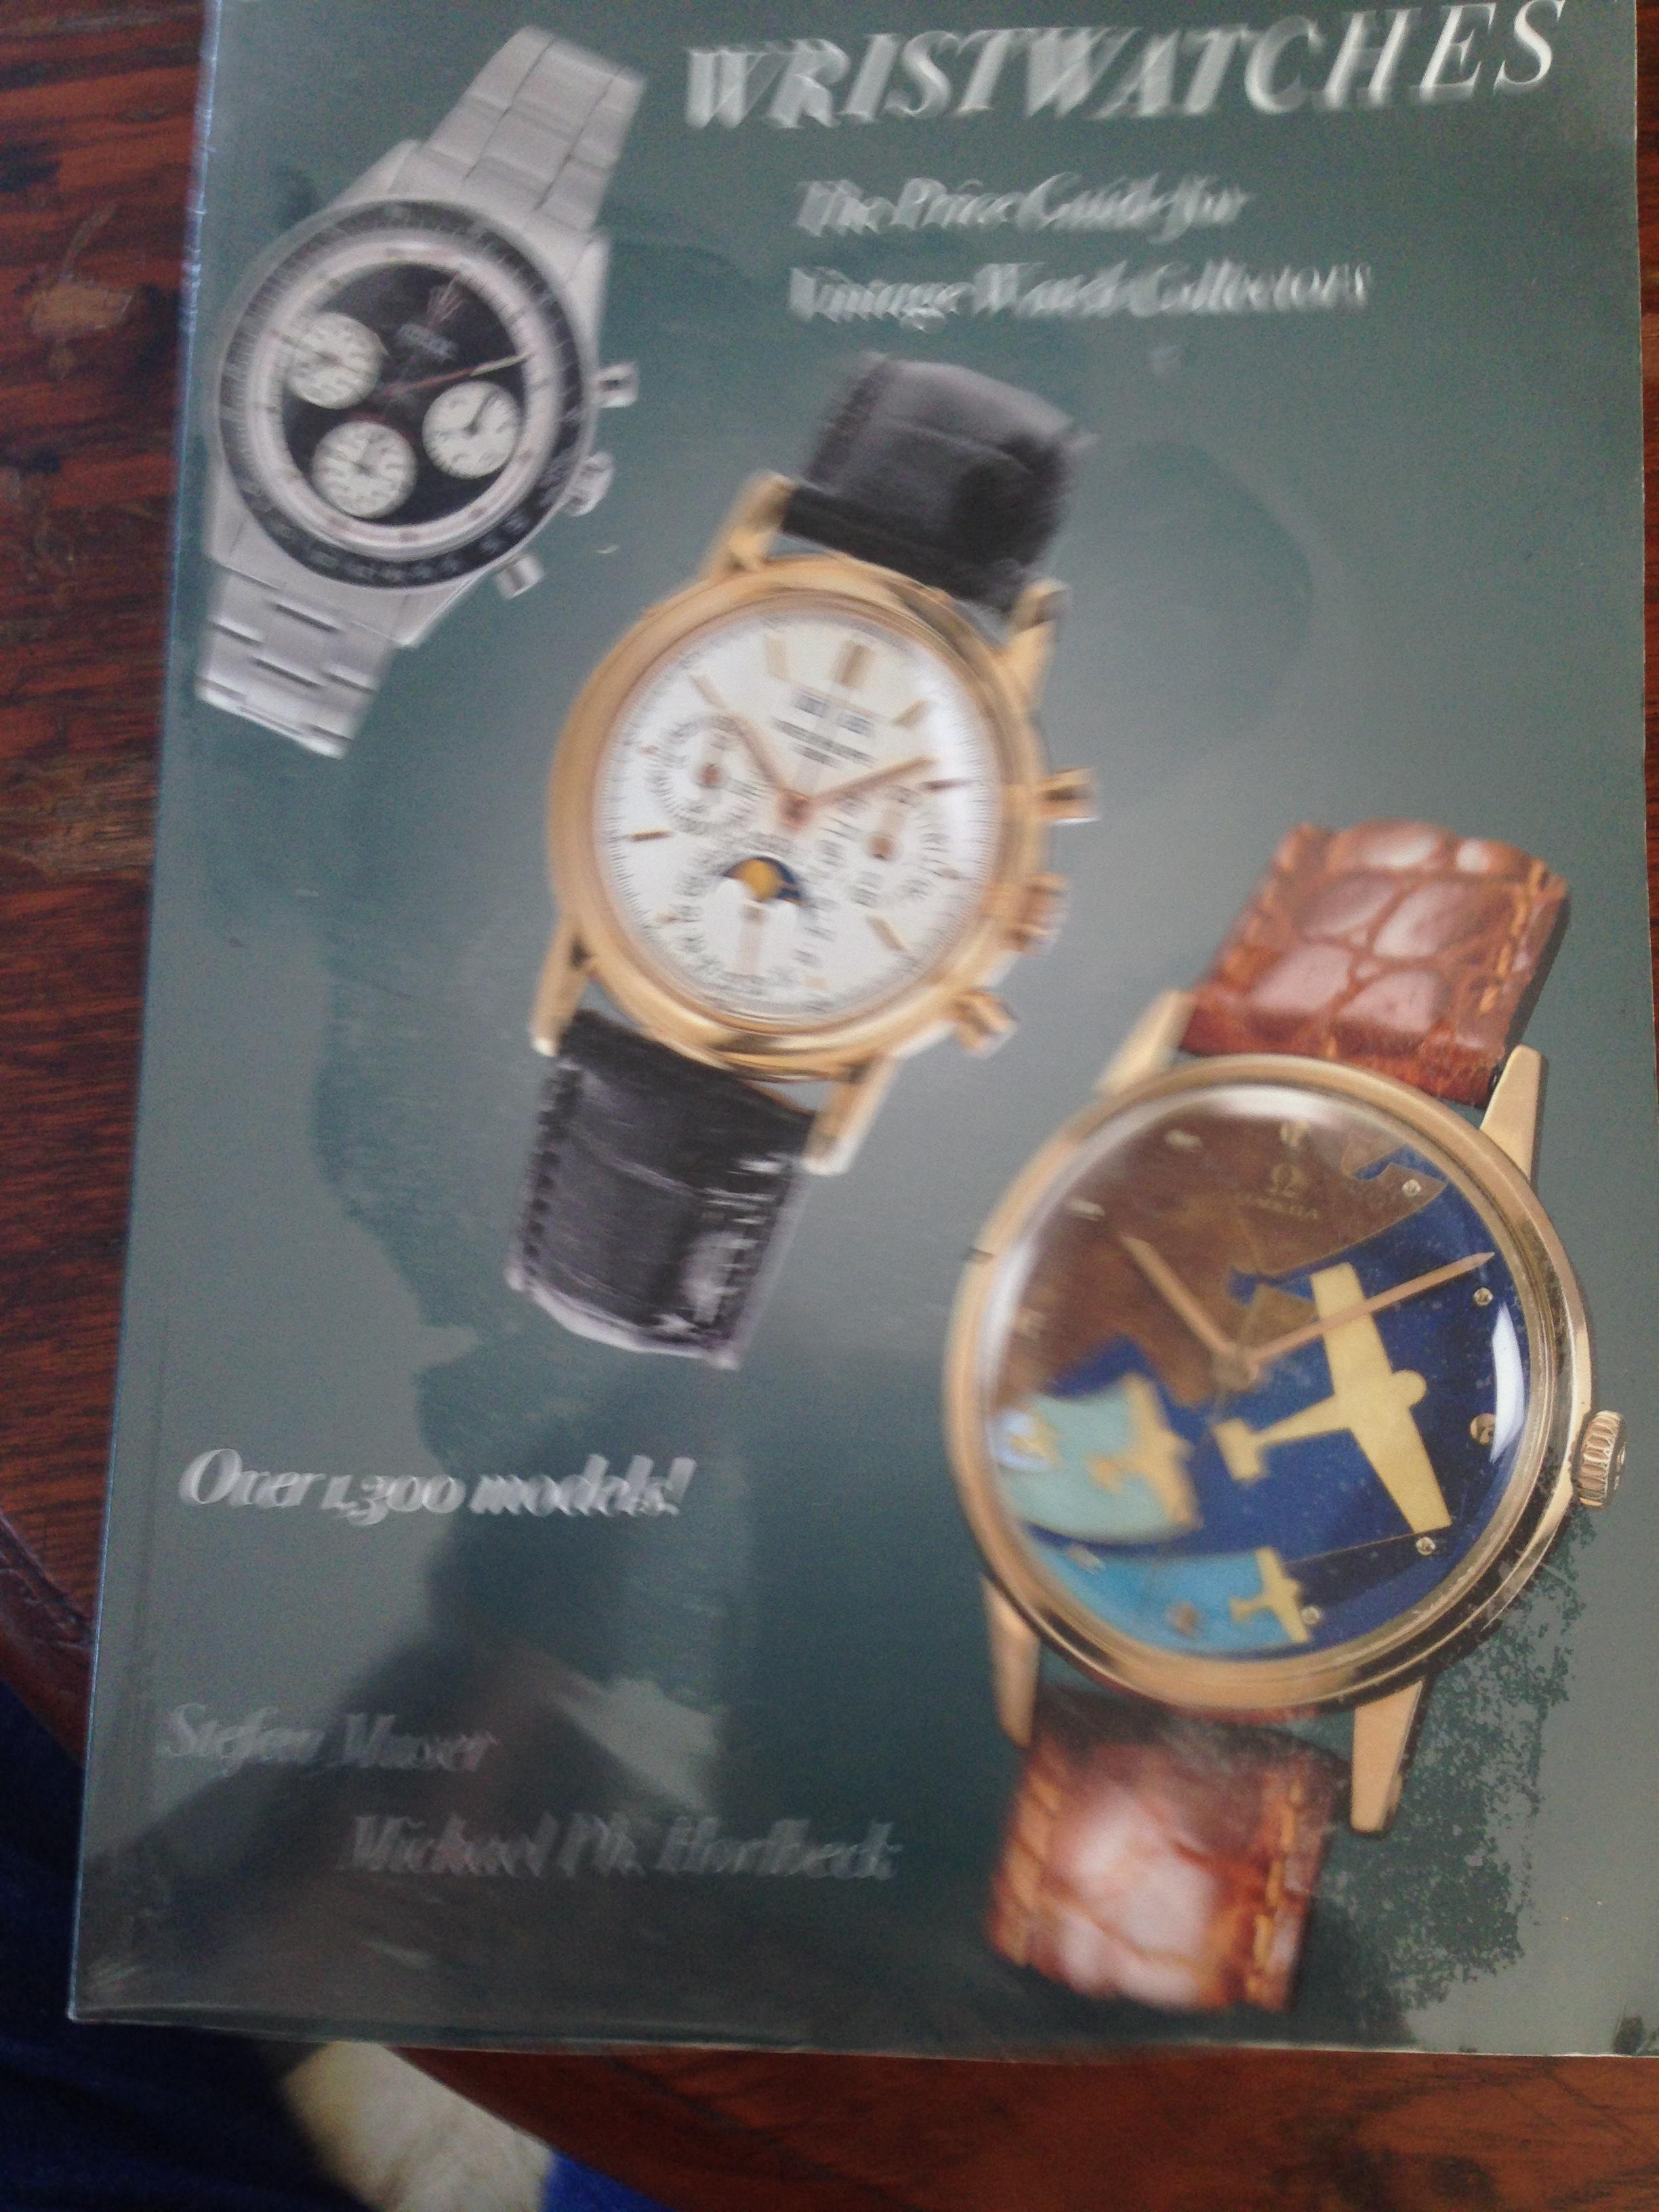 Classic Wristwatches. The Price Guide for Vintage Watch Collectors. Over 1,300 models